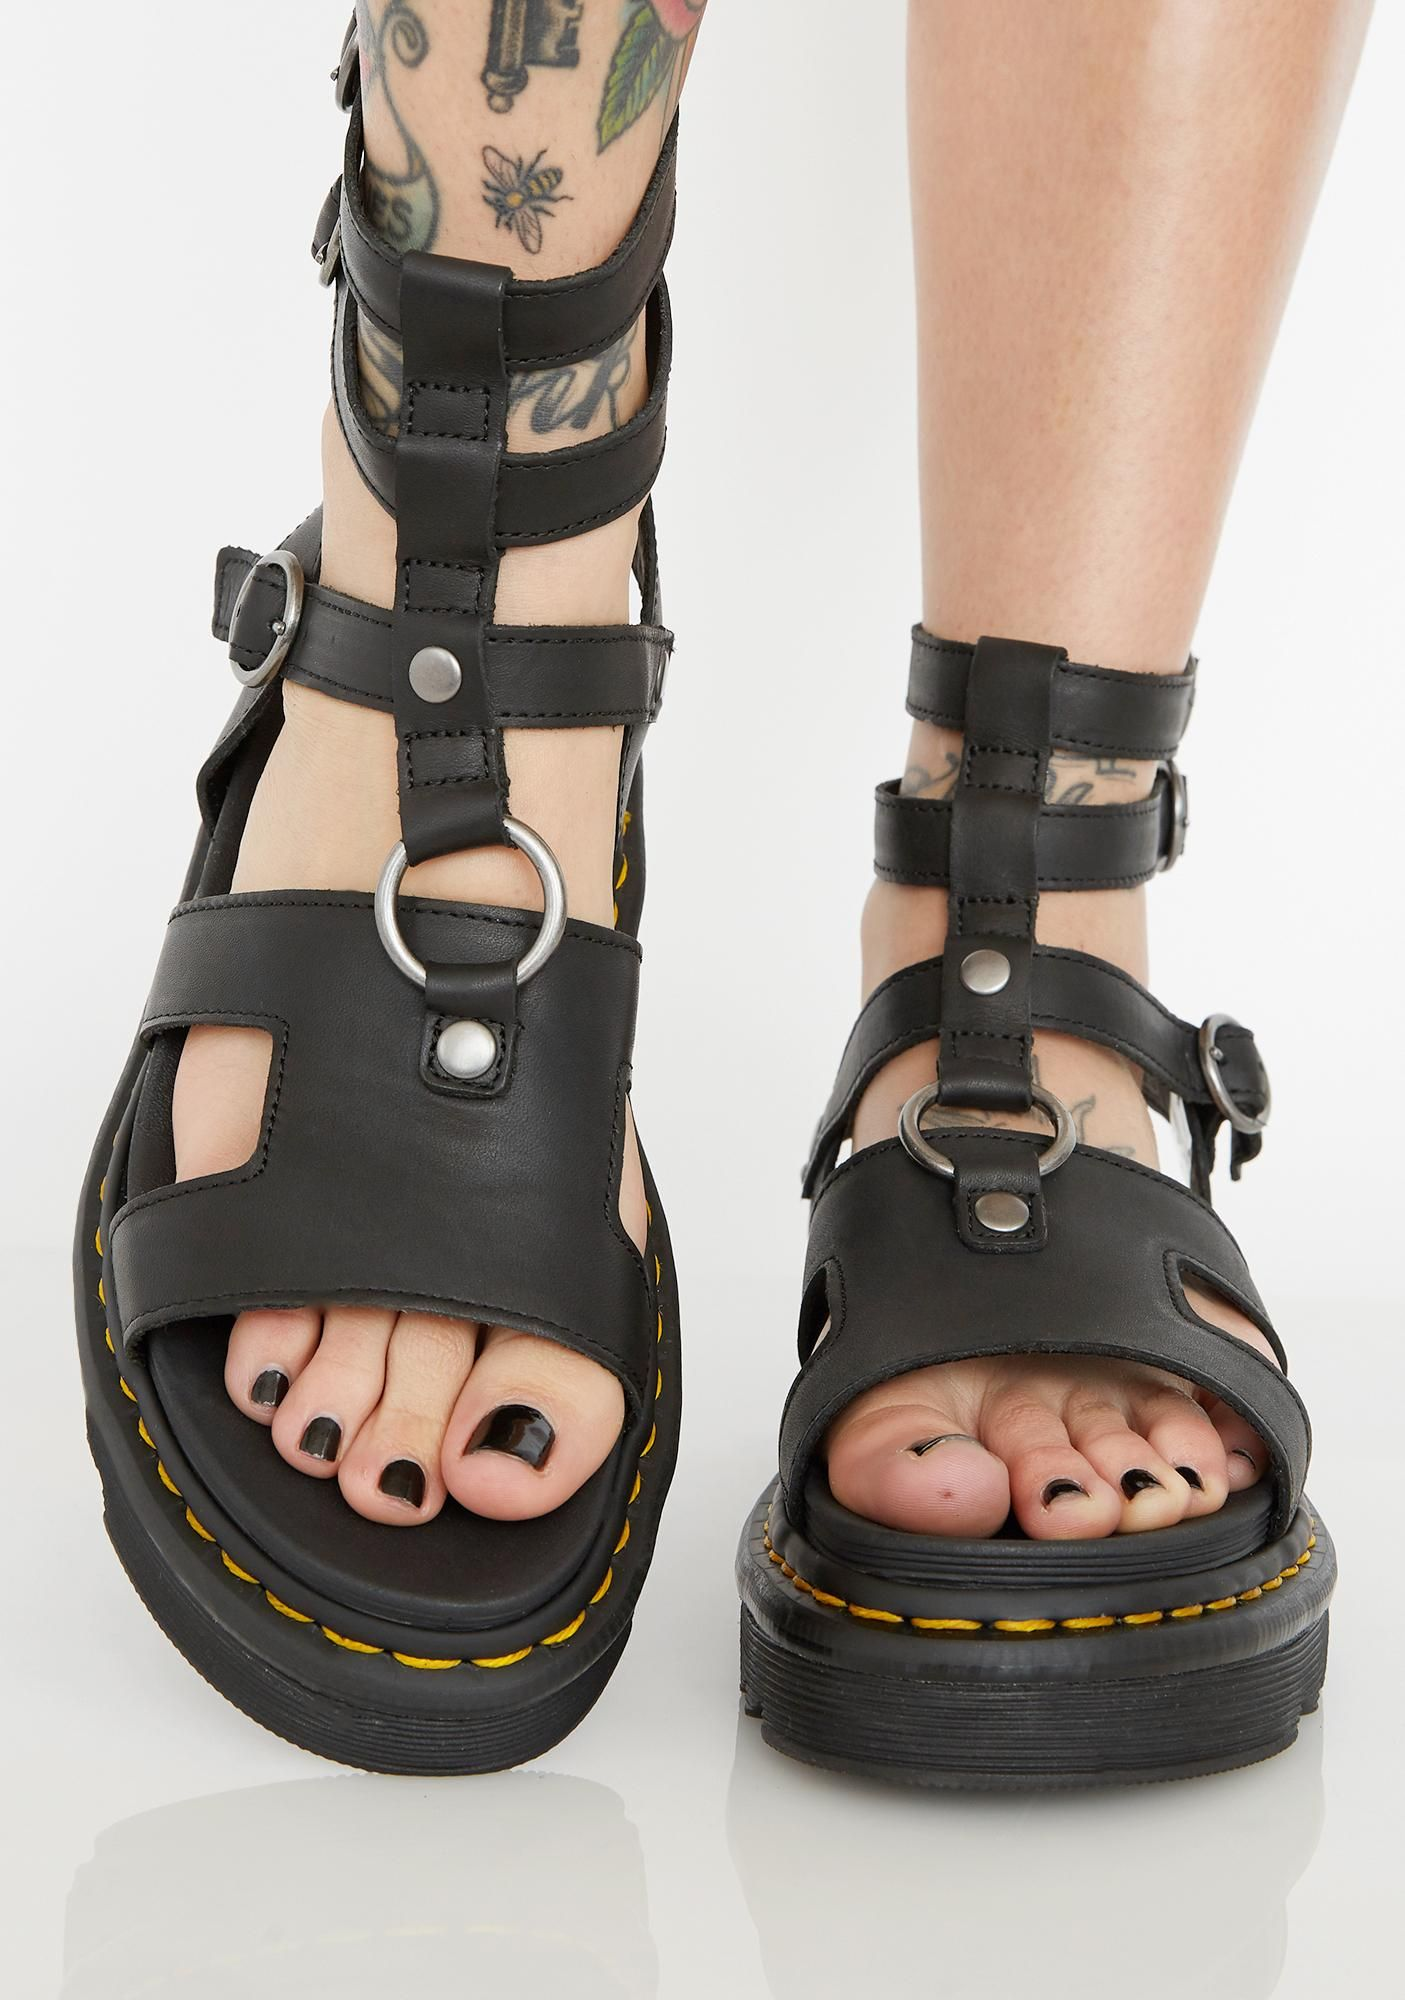 Adaira Temperley Sandals With Images Dr Martens Sandals Doc